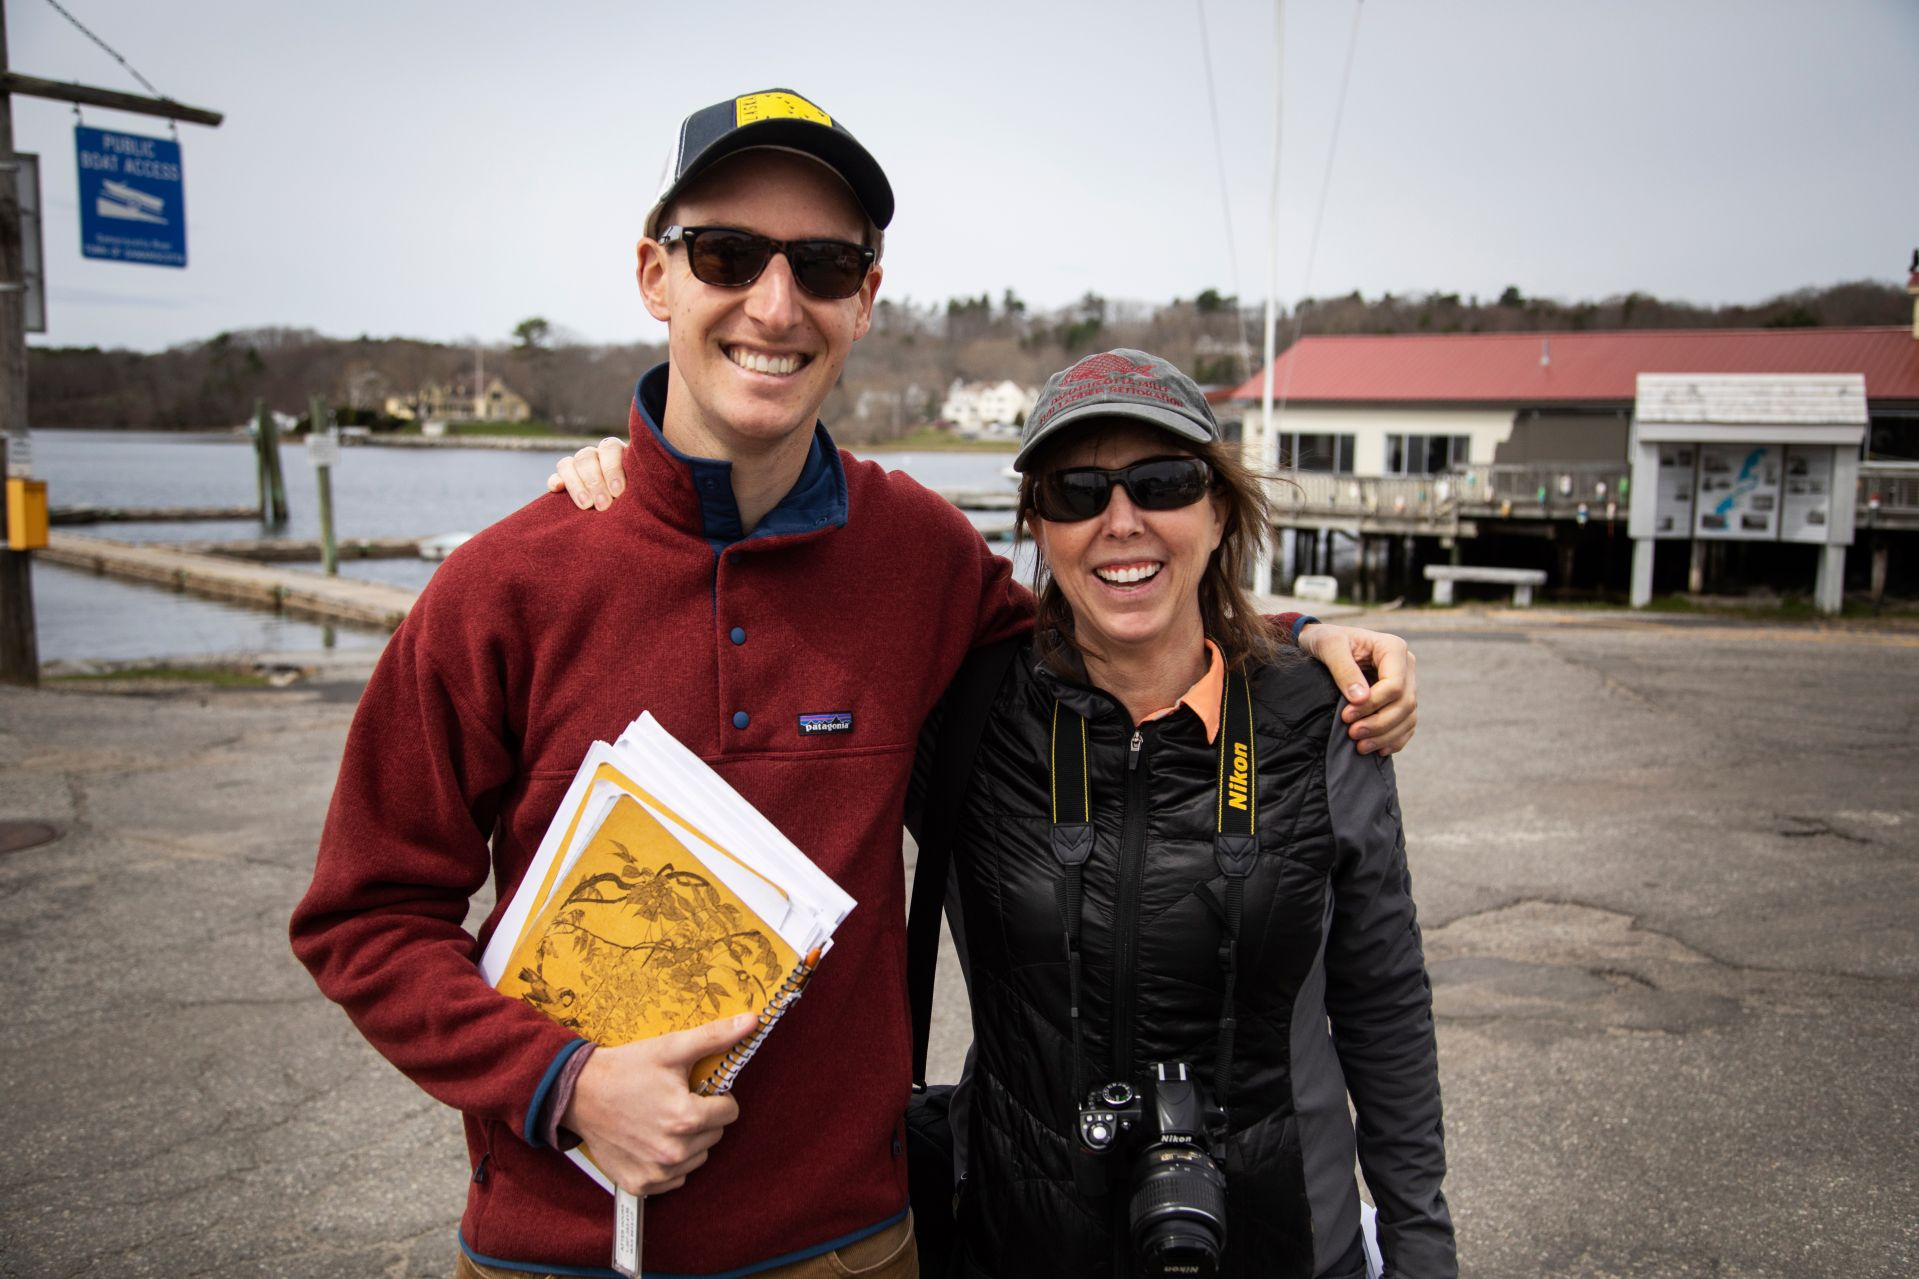 Bates students visit Damariscotta to meet with the town manager and talk about sea level rise and climate change impacts while participating in Lynne Lewis and Francis Eanes short term course 'In Search of Higher Ground' on May 1, 2019. In Search of Higher Ground: Sea Level Rise, Coastal Flooding and the Future of the Eastern Seaboard Climate change, increased storm frequency and intensity, and sea level rise have created an urgent need for adaptation planning for many communities along the U.S. eastern seaboard. In this course students examine adaptation strategies and vulnerability assessments with a goal of understanding social and economic vulnerability and the complexities of coastal retreat. Utilizing climate adaptation planning tools, mapping technology, and on the ground observation, students examine adaptation strategies including managed retreat, buyouts, living shorelines, and and green infrastructure. Students consider the current and future role of FEMAís national flood insurance program as a major mechanism for incentivizing resilient or reckless coastal development. Based in experiential learning, students engage in discussions with experts, practitioners, and residents in highly vulnerable coastal areas in Maine, as well a ten-day trip to coastal communities in Virginia and North Carolina. Recommended background: ECON 250 or other statistics course. Prerequisite(s): ECON 101 or 222, or ENVR 209. New course beginning Short Term 2019. 1.000 Credit hours